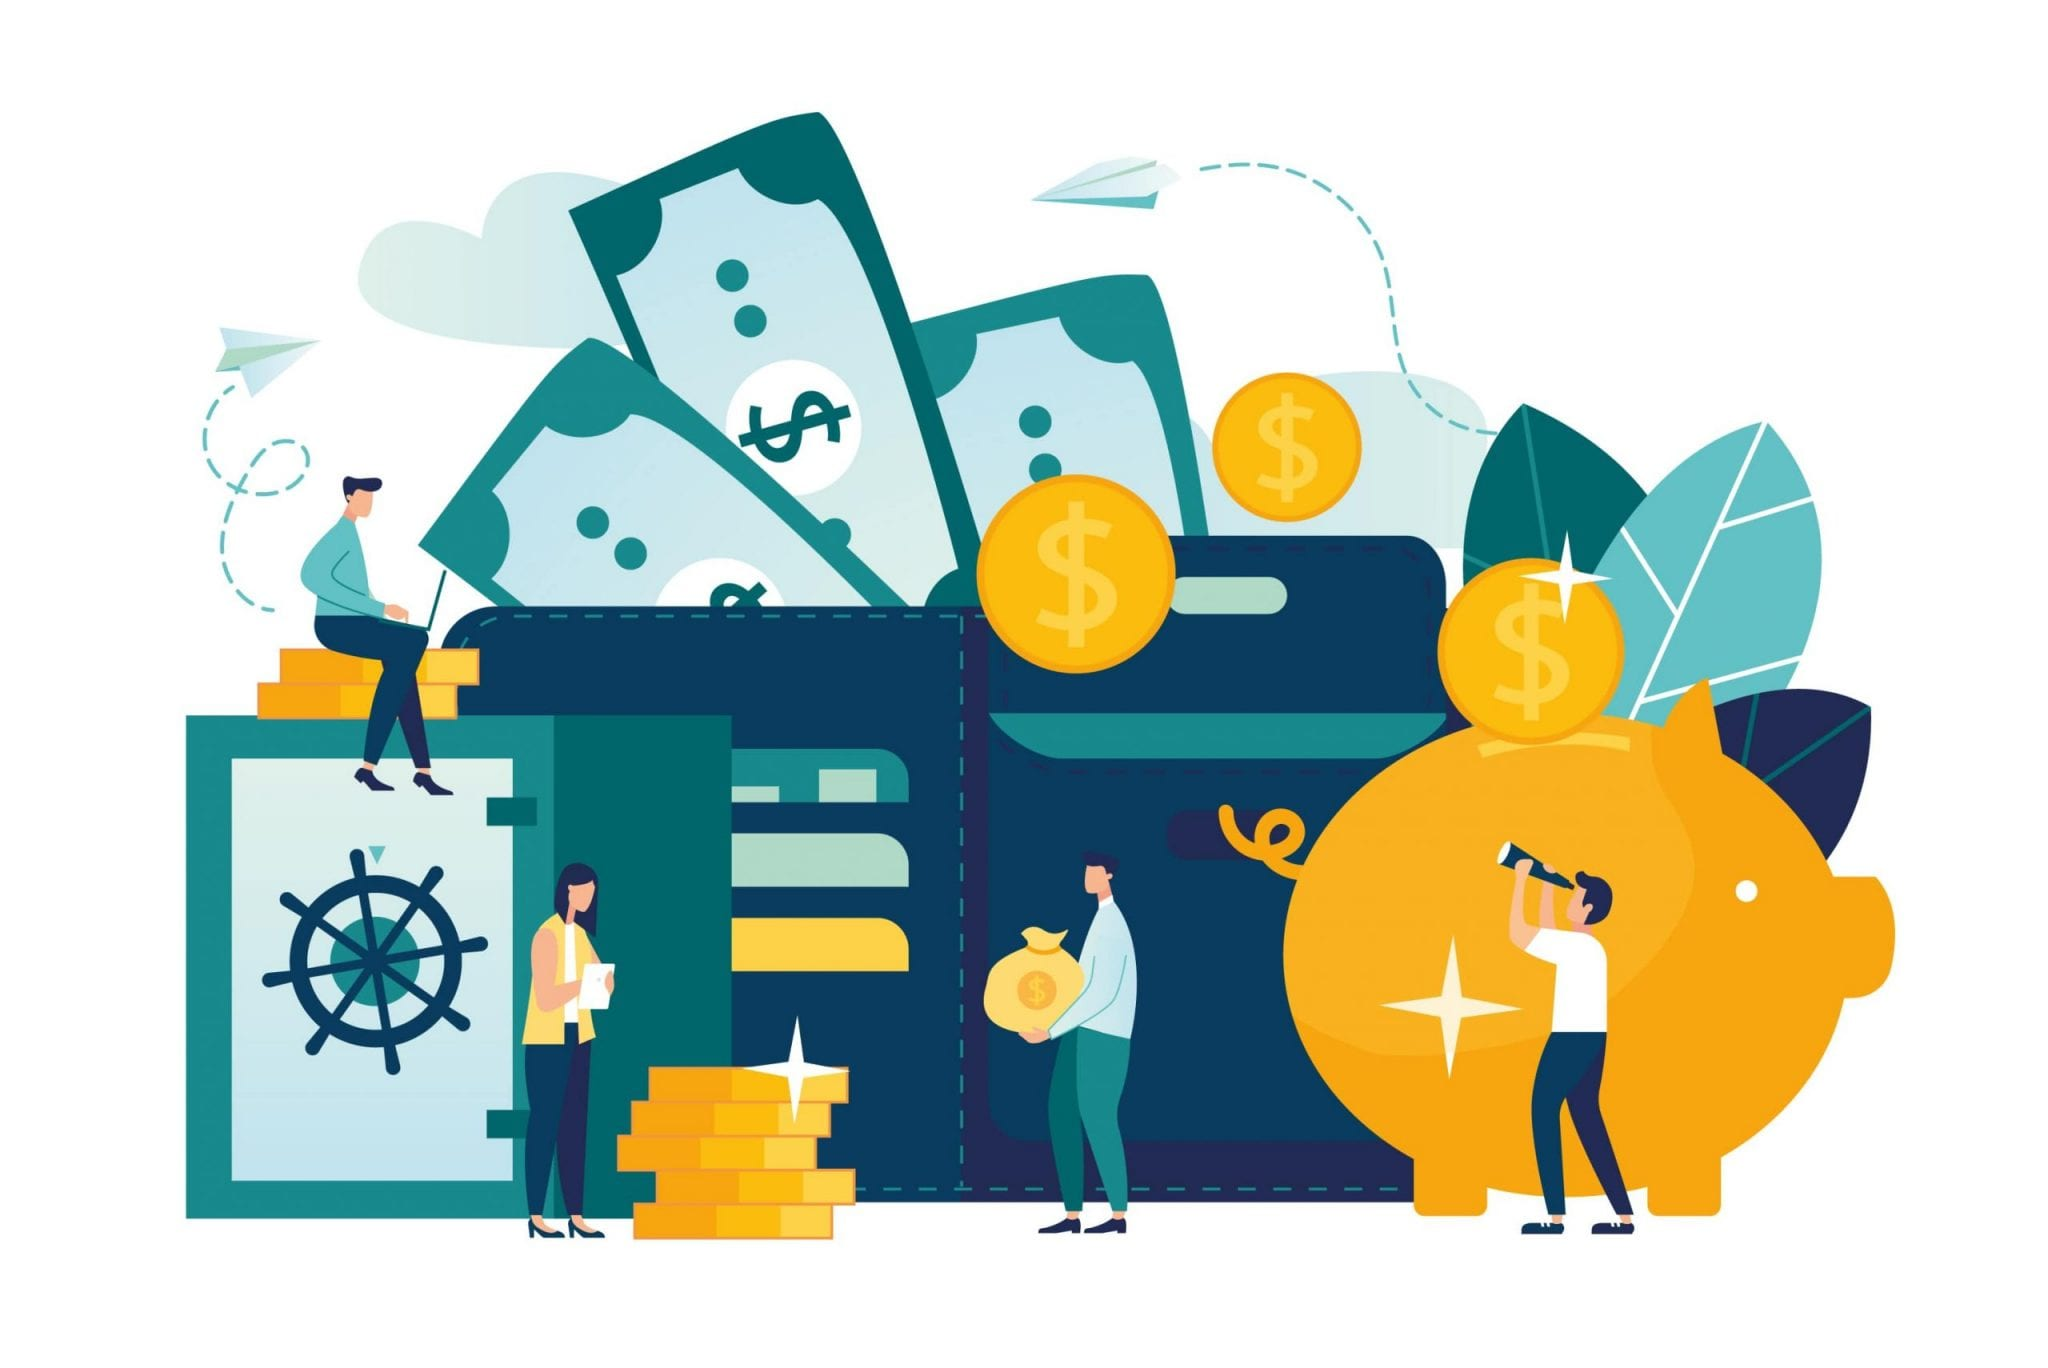 Vector Flat Illustration, a Large Piggy Bank in the Form of a Pig on a White Background, Open Purse, Financial Services, Small Bankers Are Engaged in Work, Saving or Accumulating Money, a Box of Coins